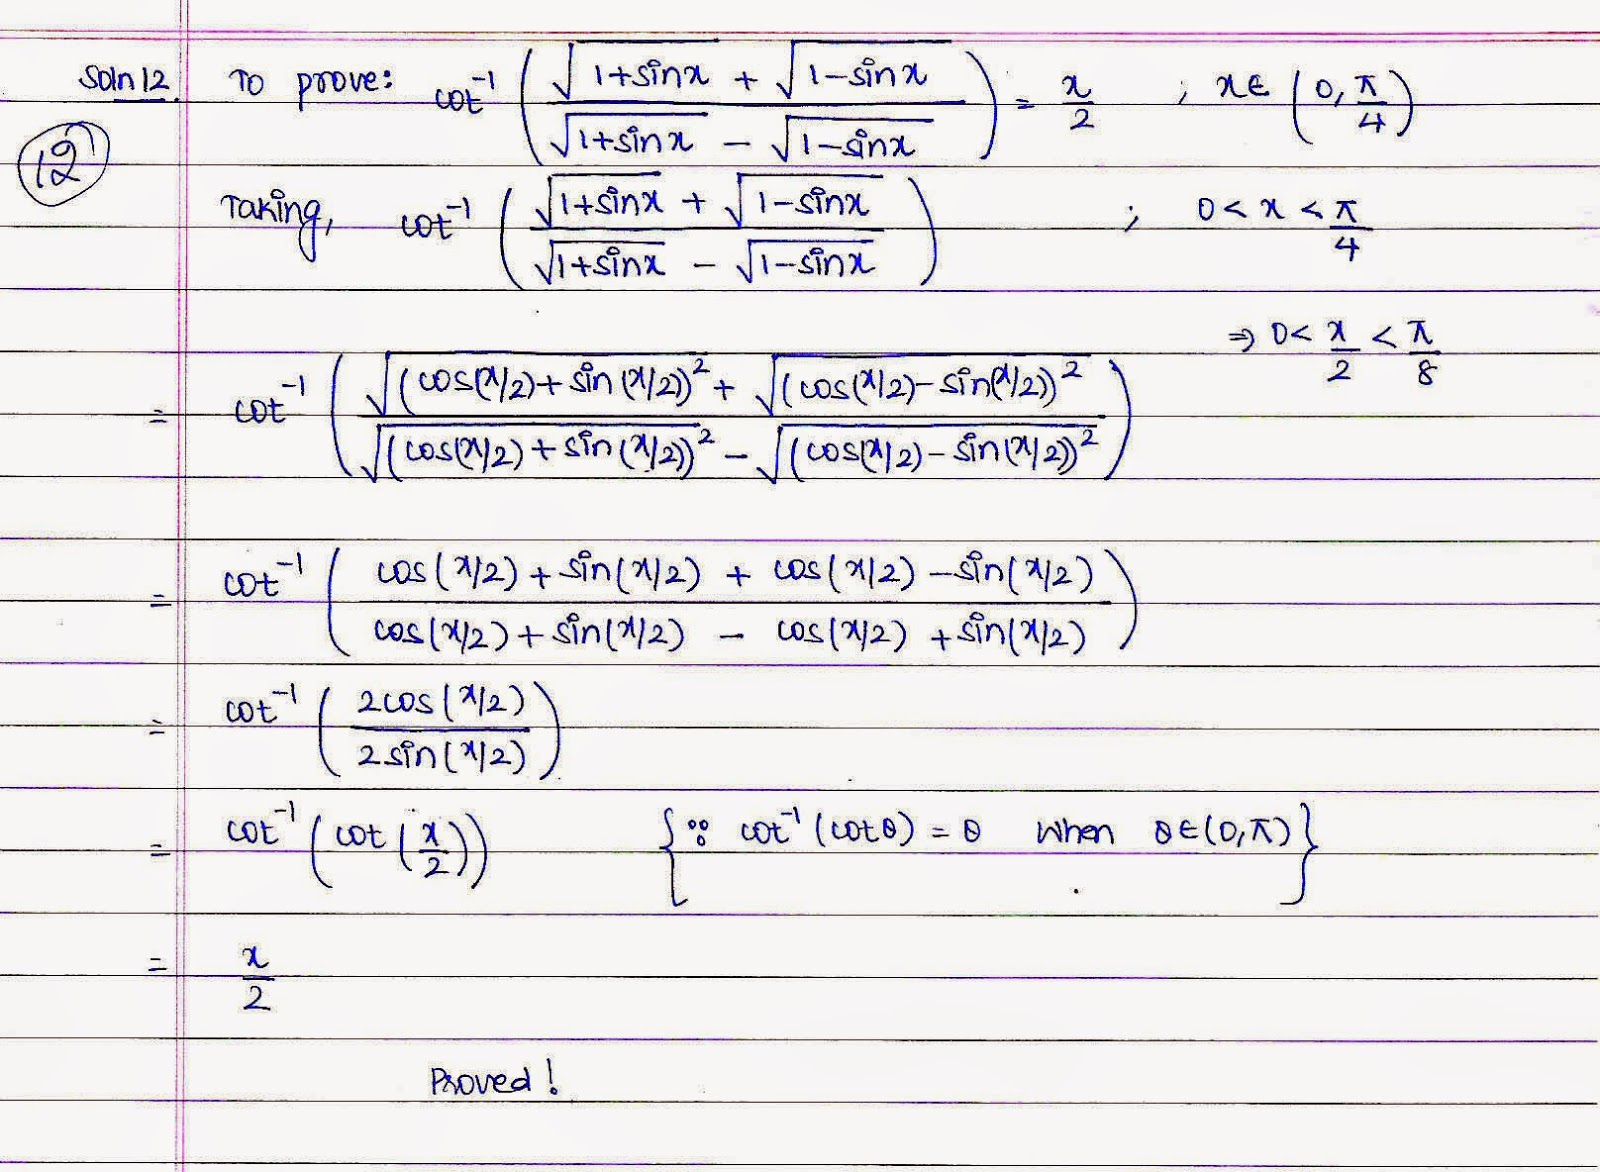 physics class 12th sample paper sa1 Sample papers of class 11 physics sa1 cbse sample papers for class 11 physics sa1 2014, cbse sample papers for class 11 physics sa1 2014 cbse sample papers for class 11 physics sa1 2014 cbse.